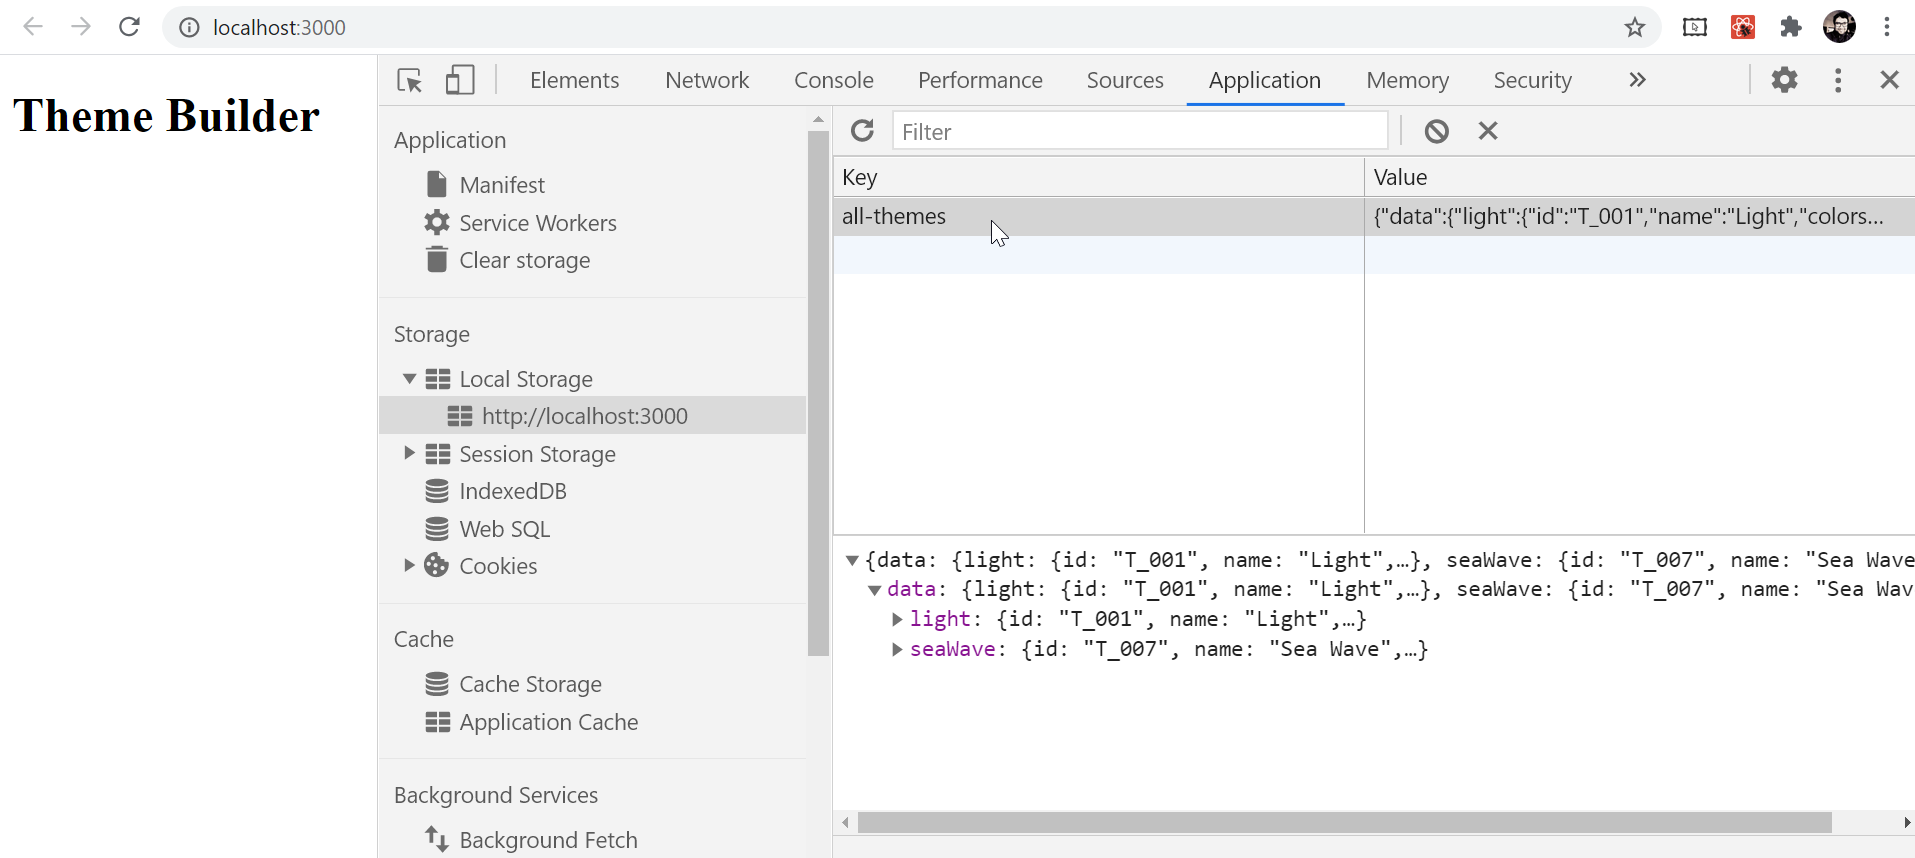 The theme with DevTools open and showing the theme properties in the console.